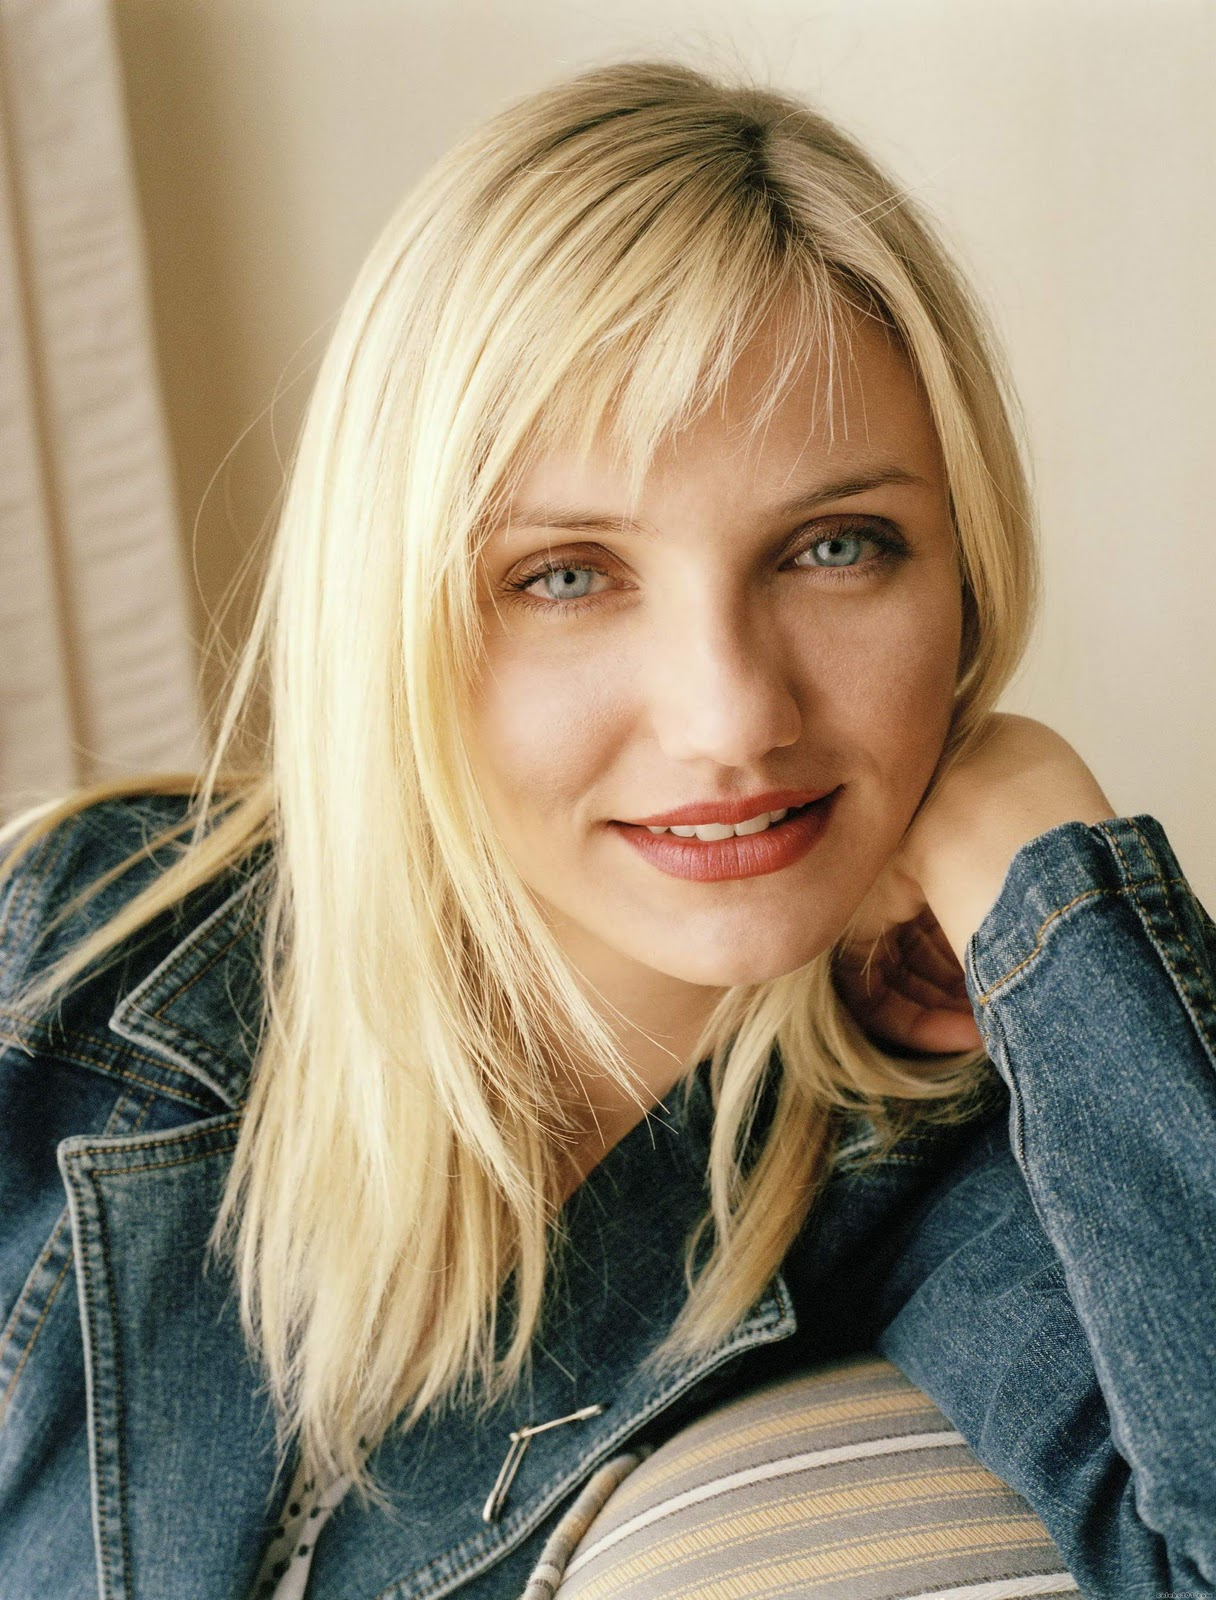 cameron diaz - photo #11